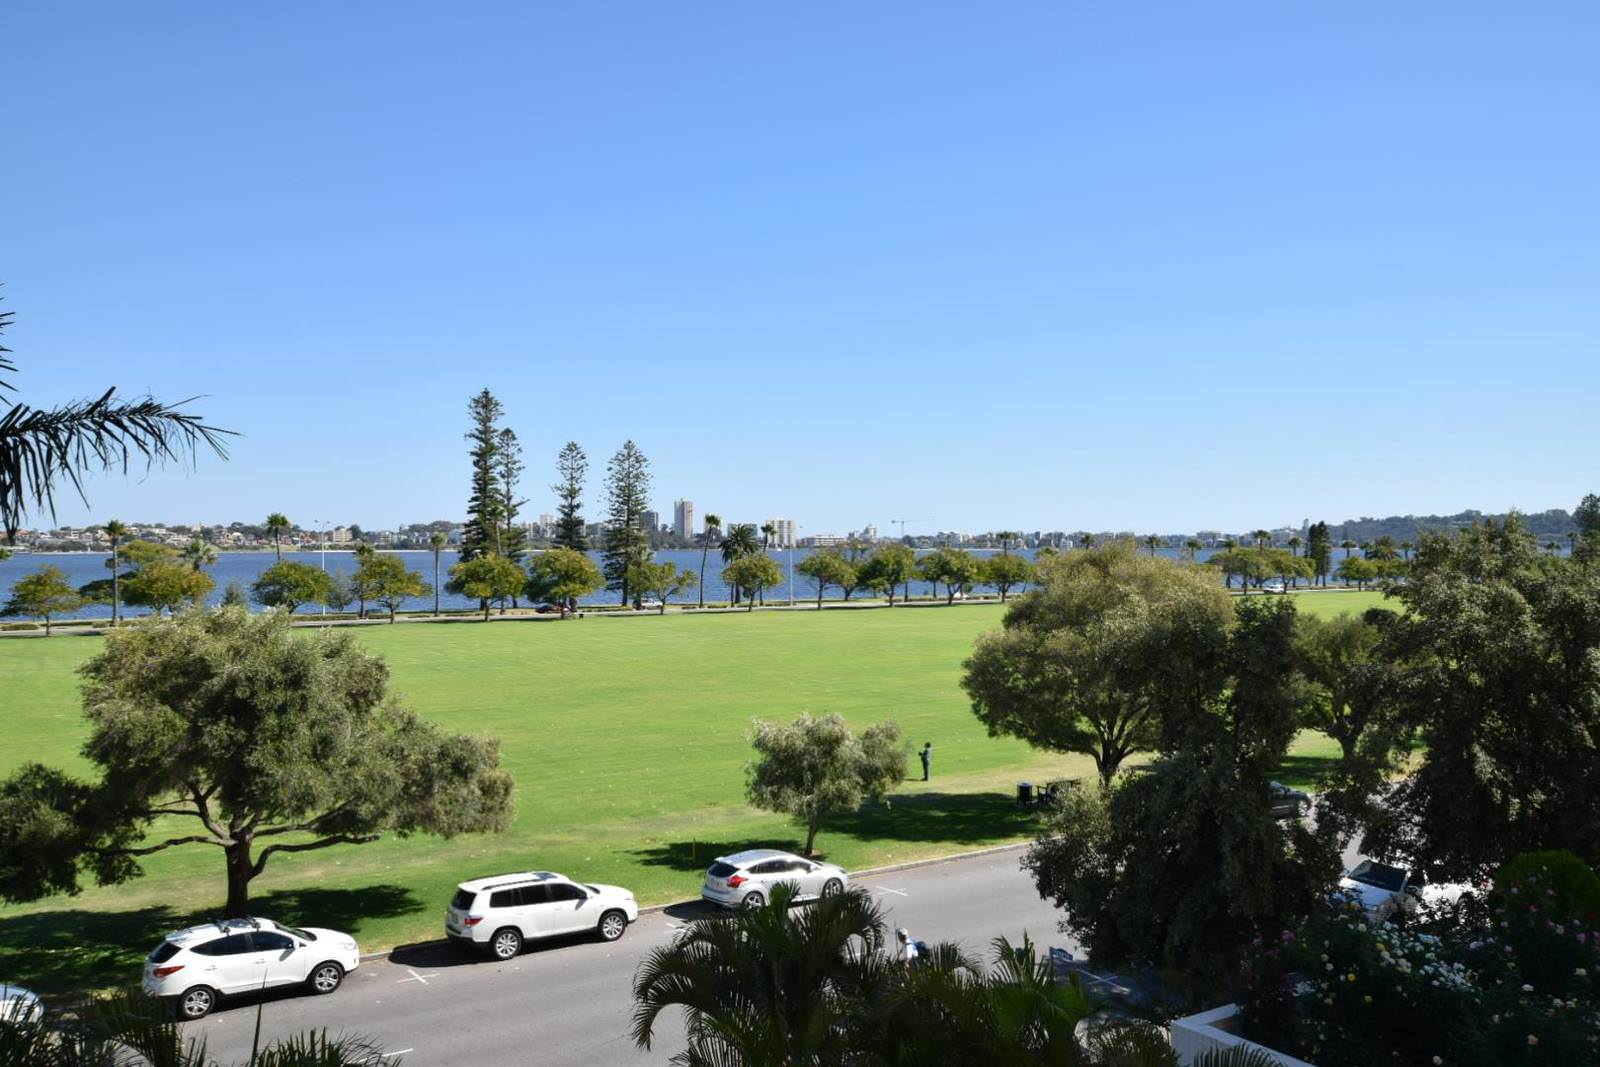 Crowne Plaza Perth A Wonderful Hotel Experience Enhanced by an Expected Reunion View